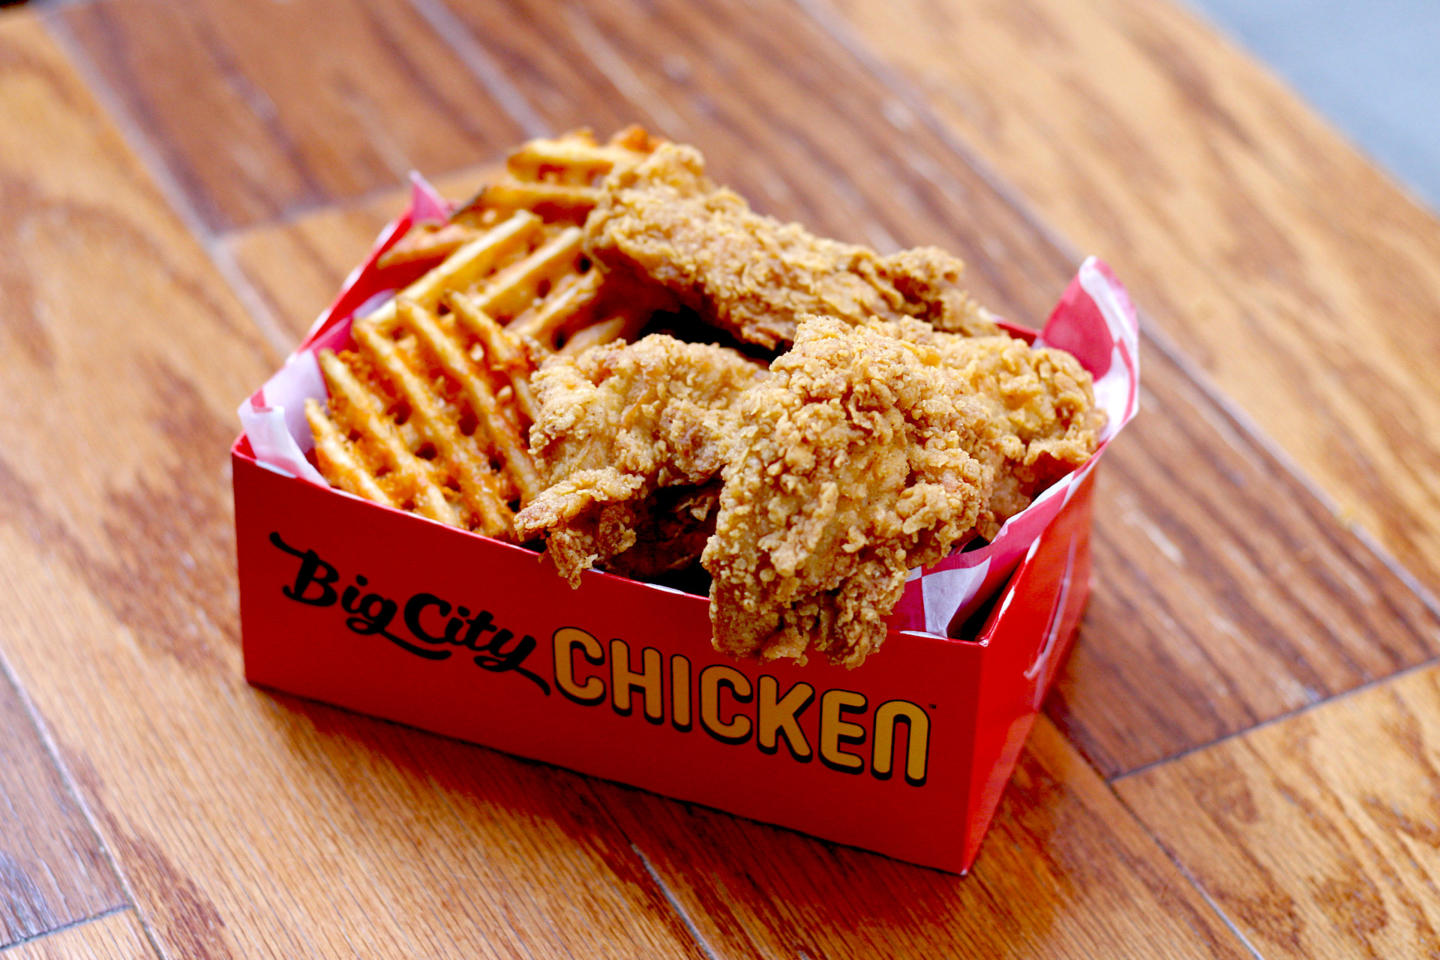 Big City Chicken tender basket with waffle fries